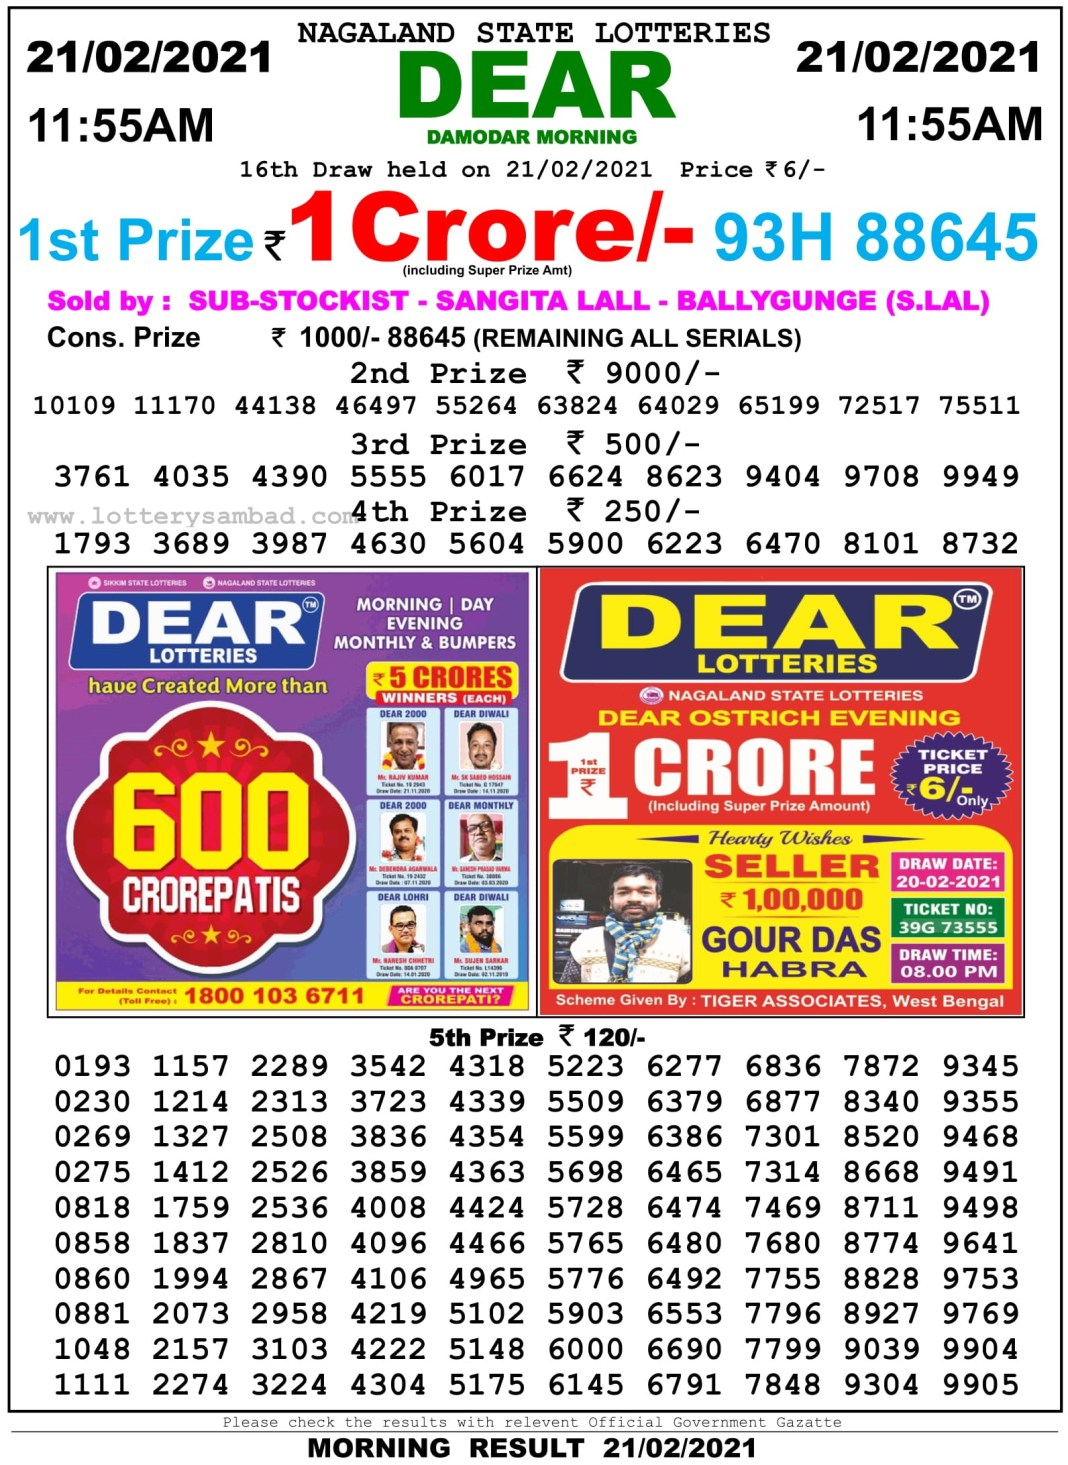 Sikkim State Lottery Result 11.55 AM 21.2.2021